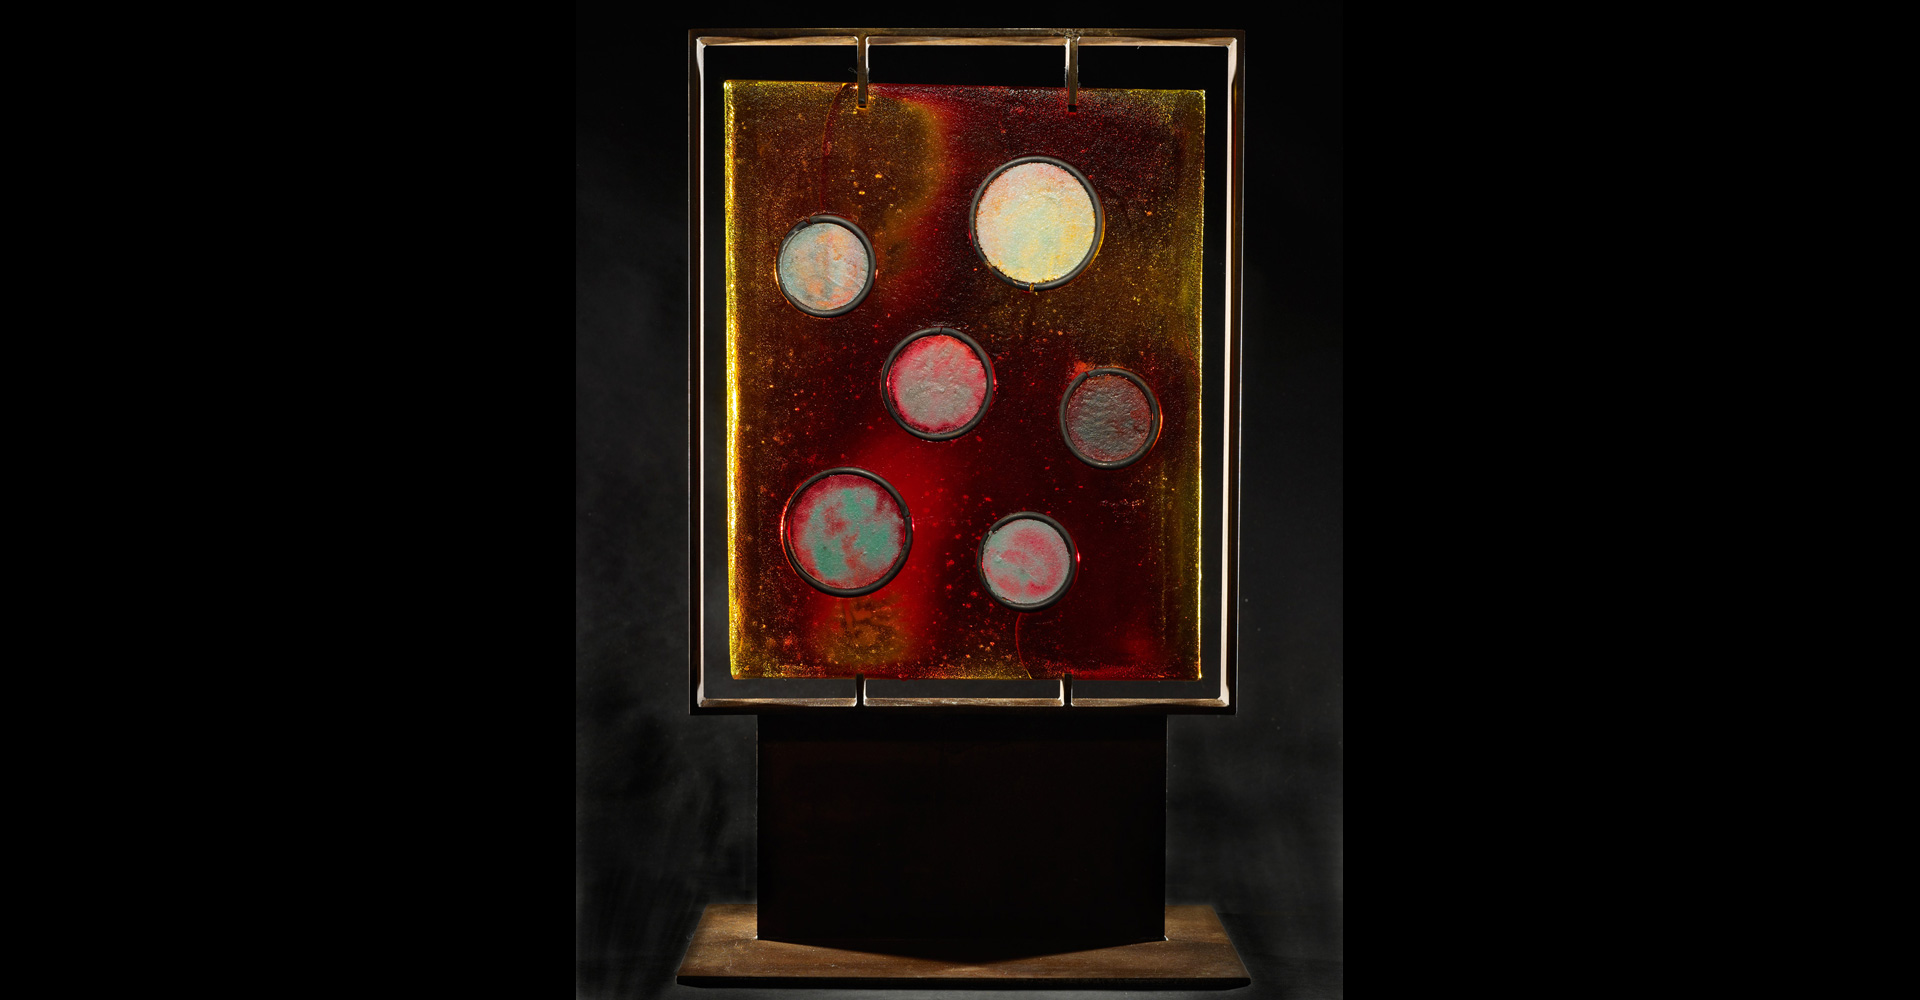 Panel Amber Door With Circles sand cast glass art sculpture by Marlene Rose